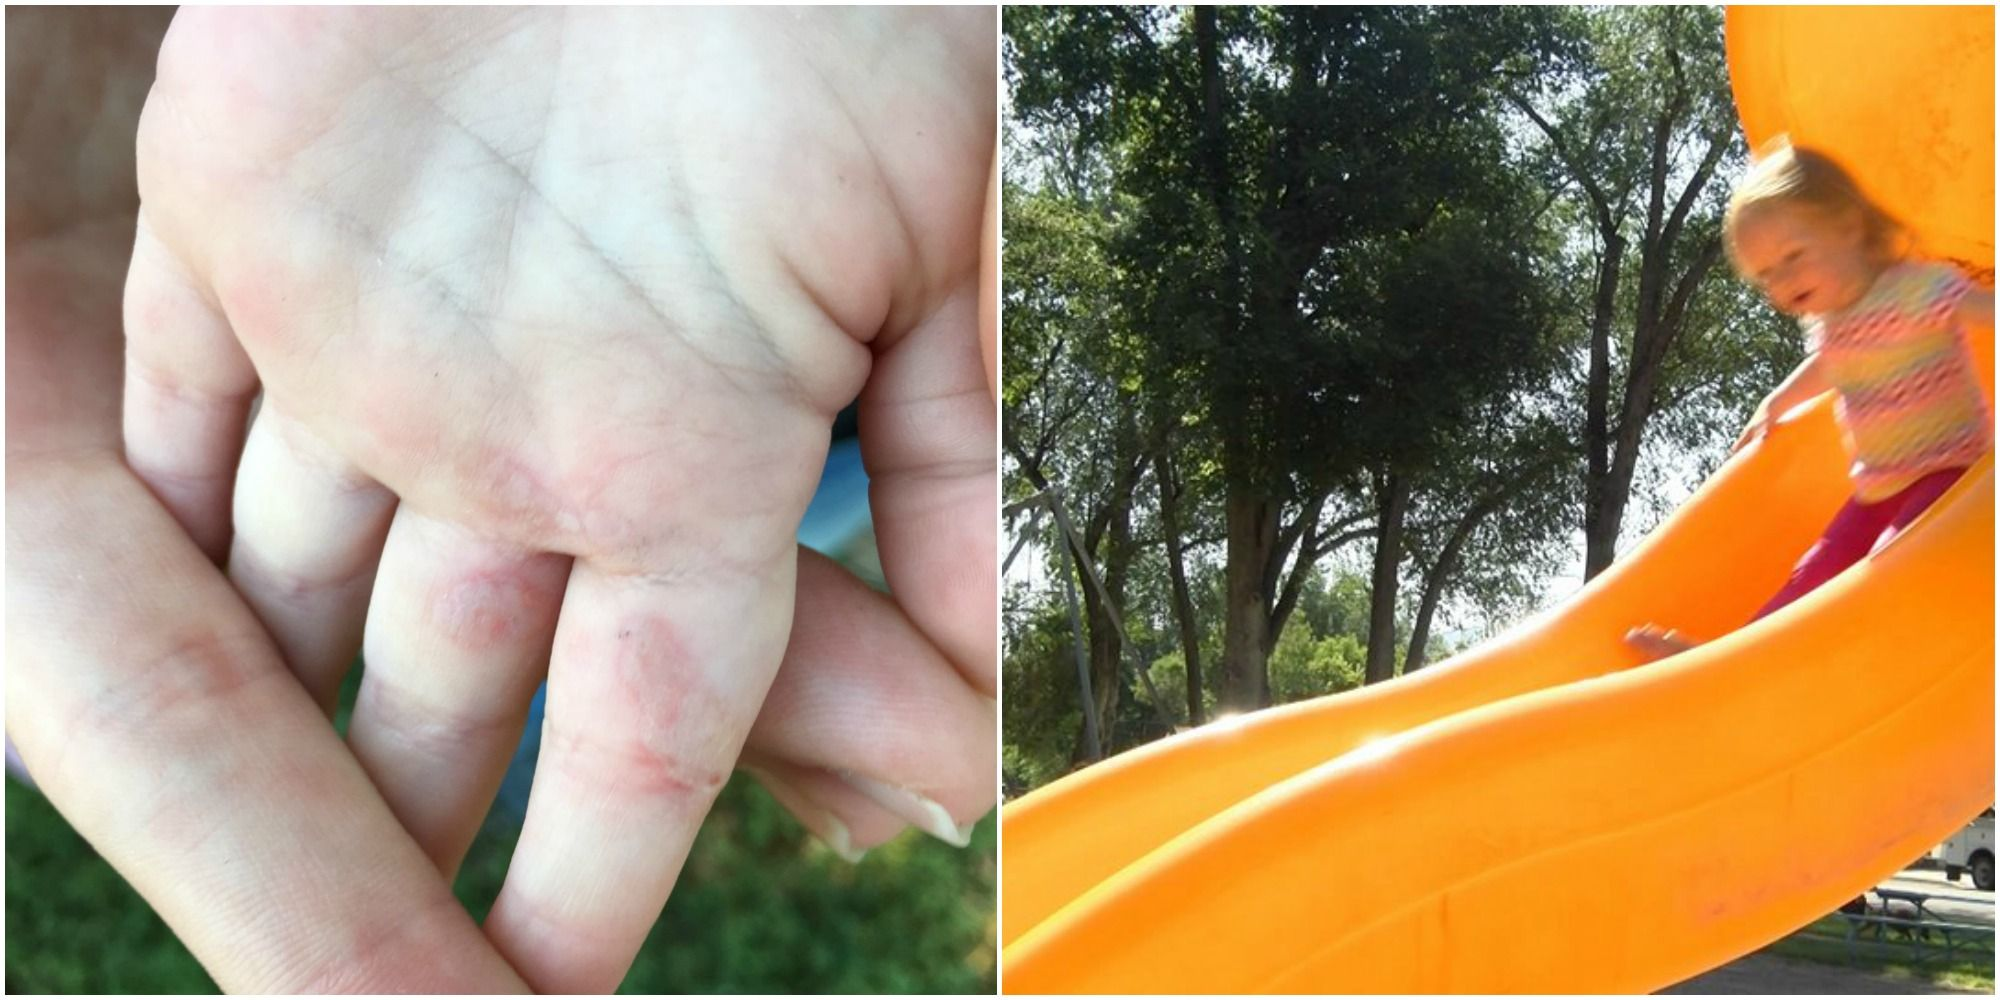 Toddler Suffers Second-Degree Thermal Burns From Plastic Playground Slide